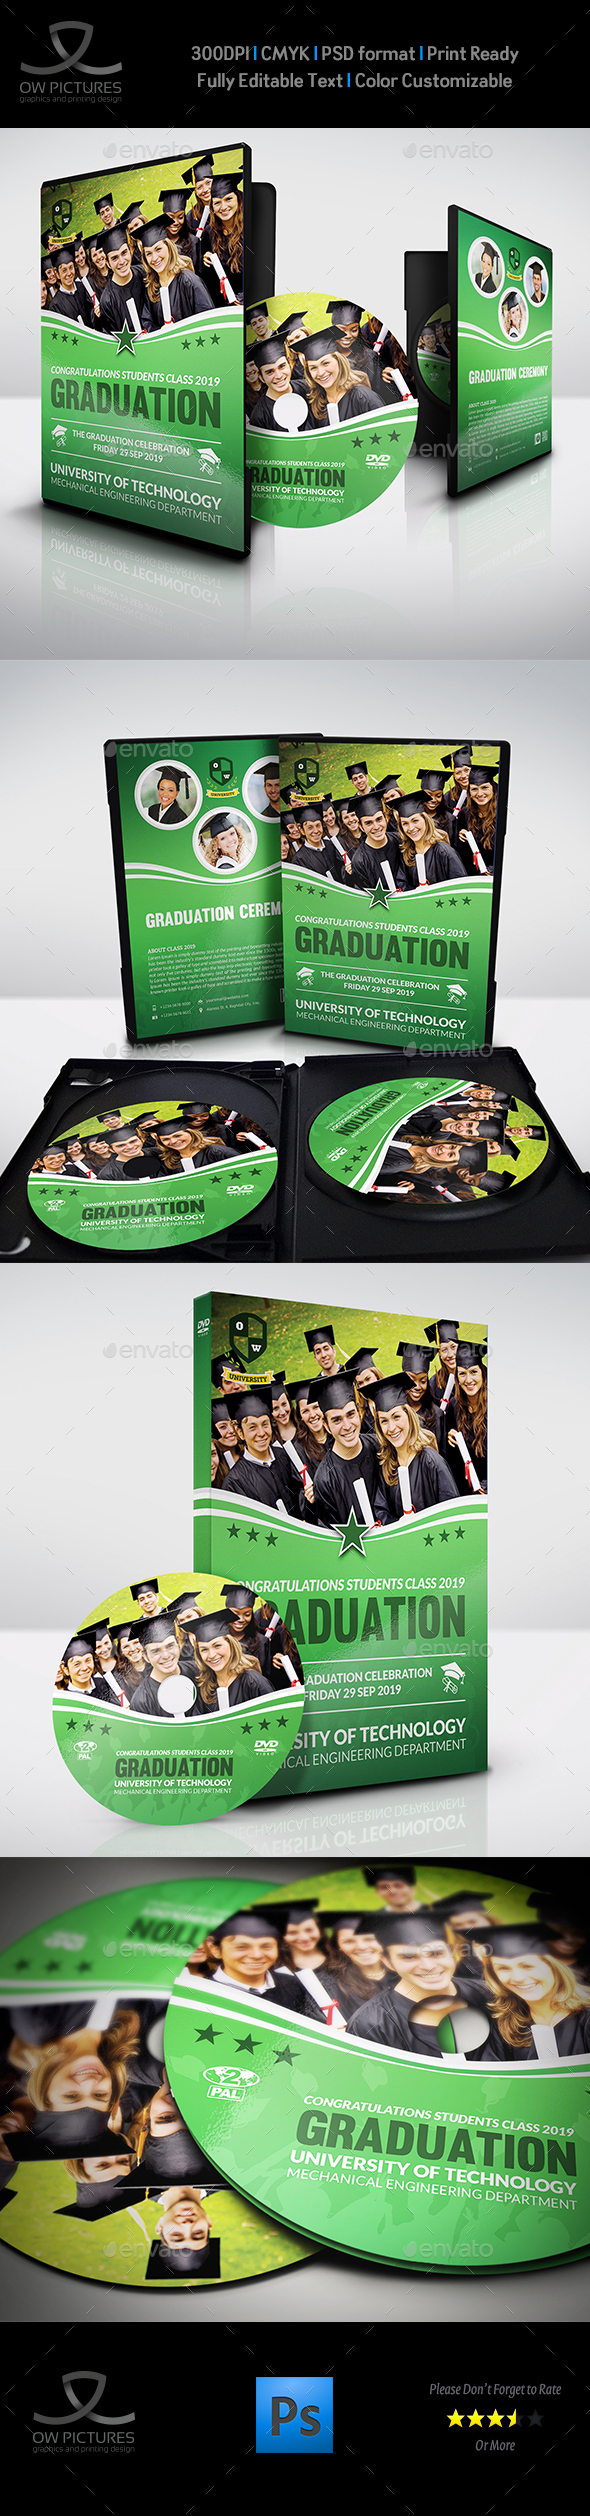 Graduation Ceremony DVD Cover and Label Template Vol.3 - CD & DVD Artwork Print Templates